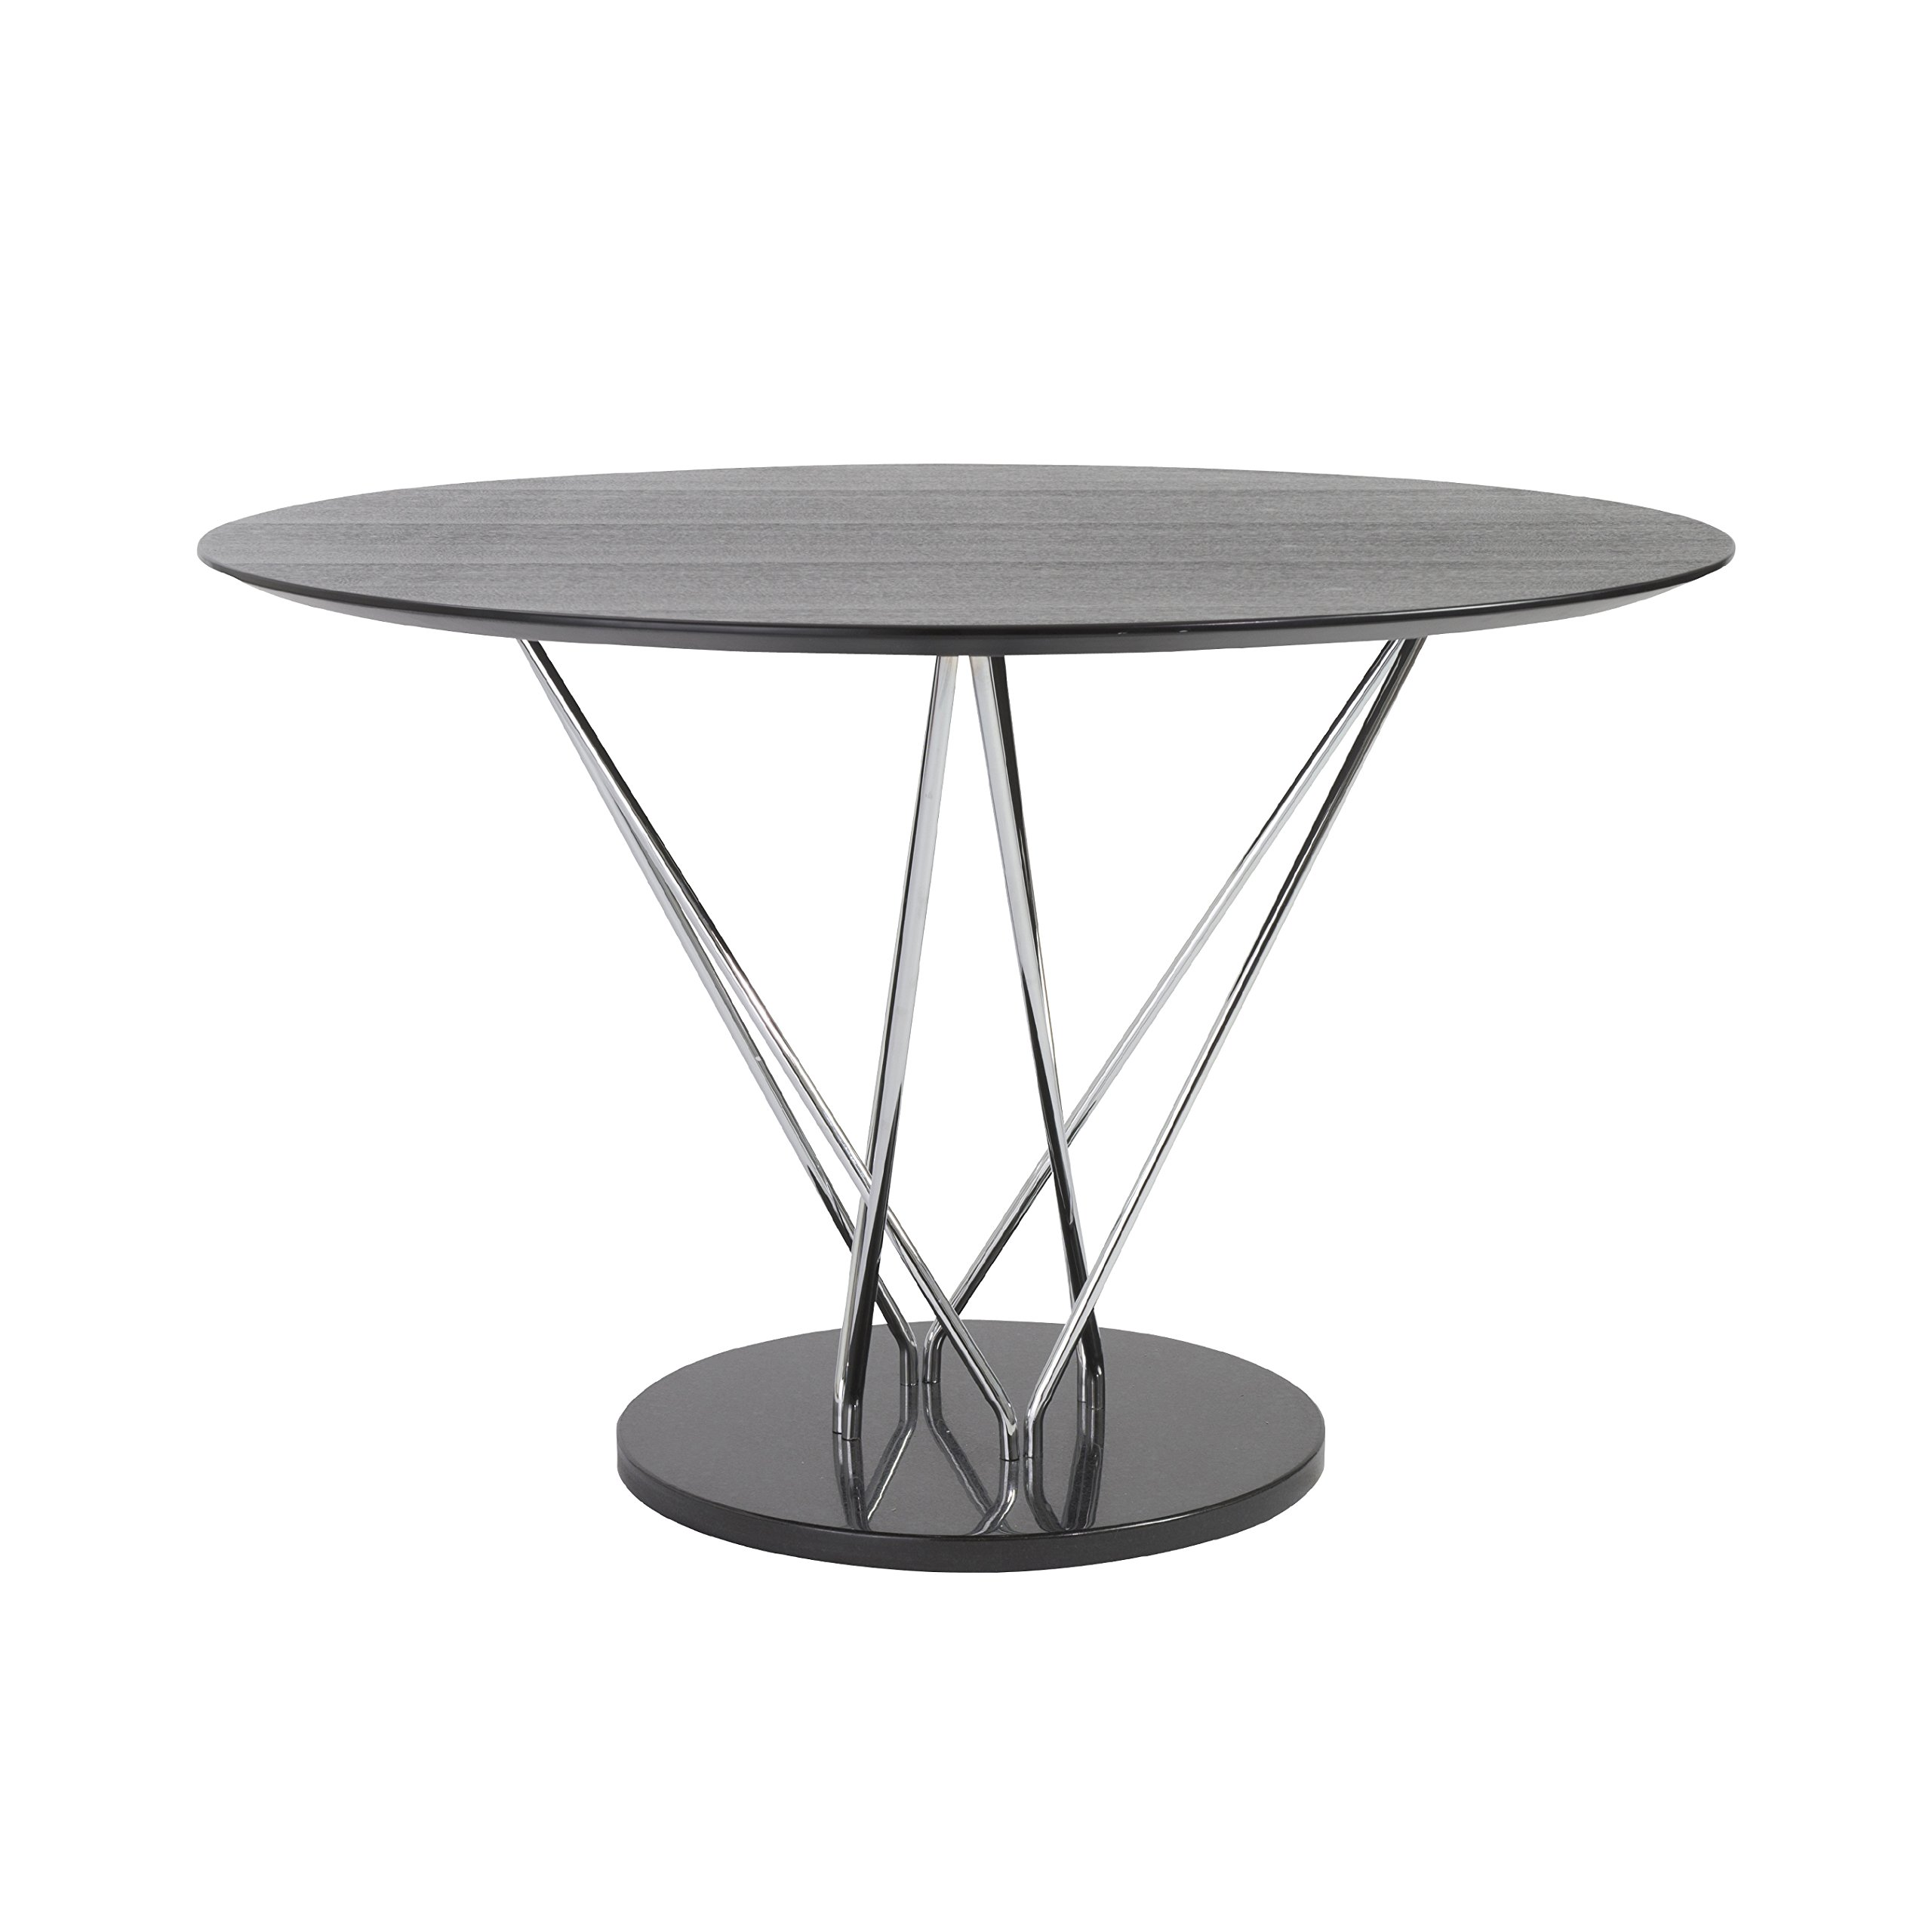 47'' Round Ebony and Steel Meeting Table by eS (Image #2)